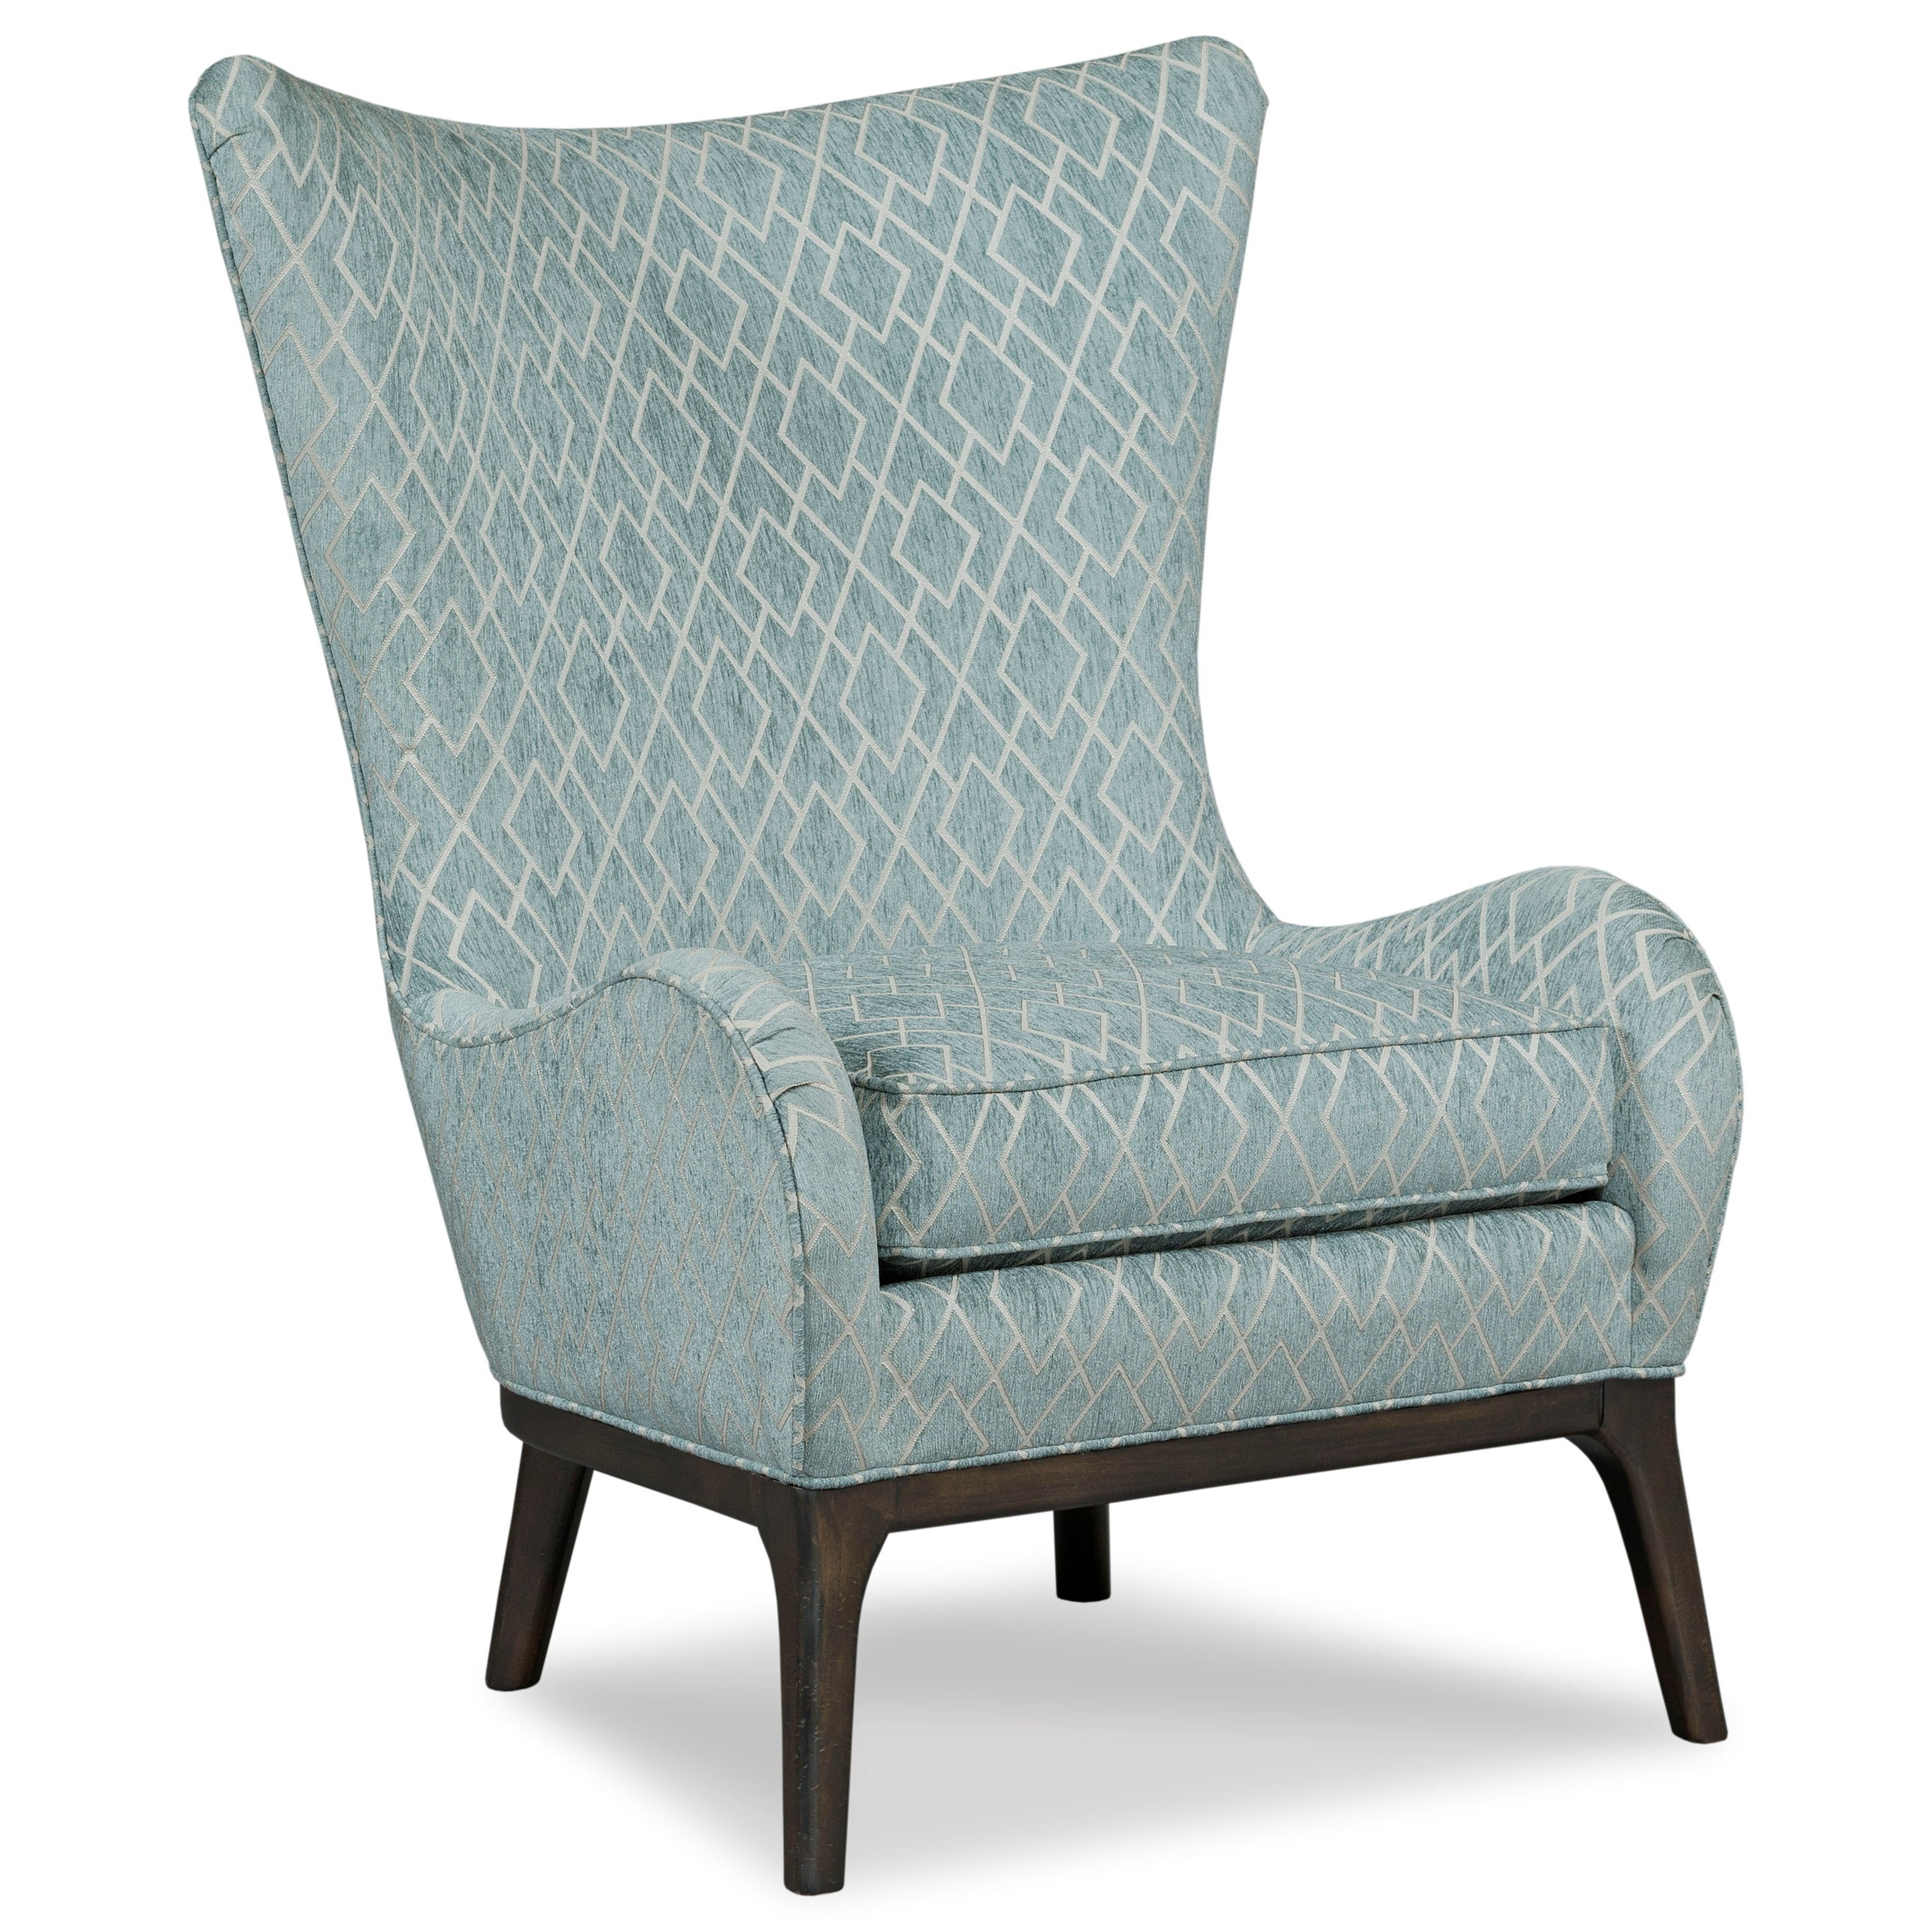 Charmant Chairs Contemporary Wingback Chair By Fairfield